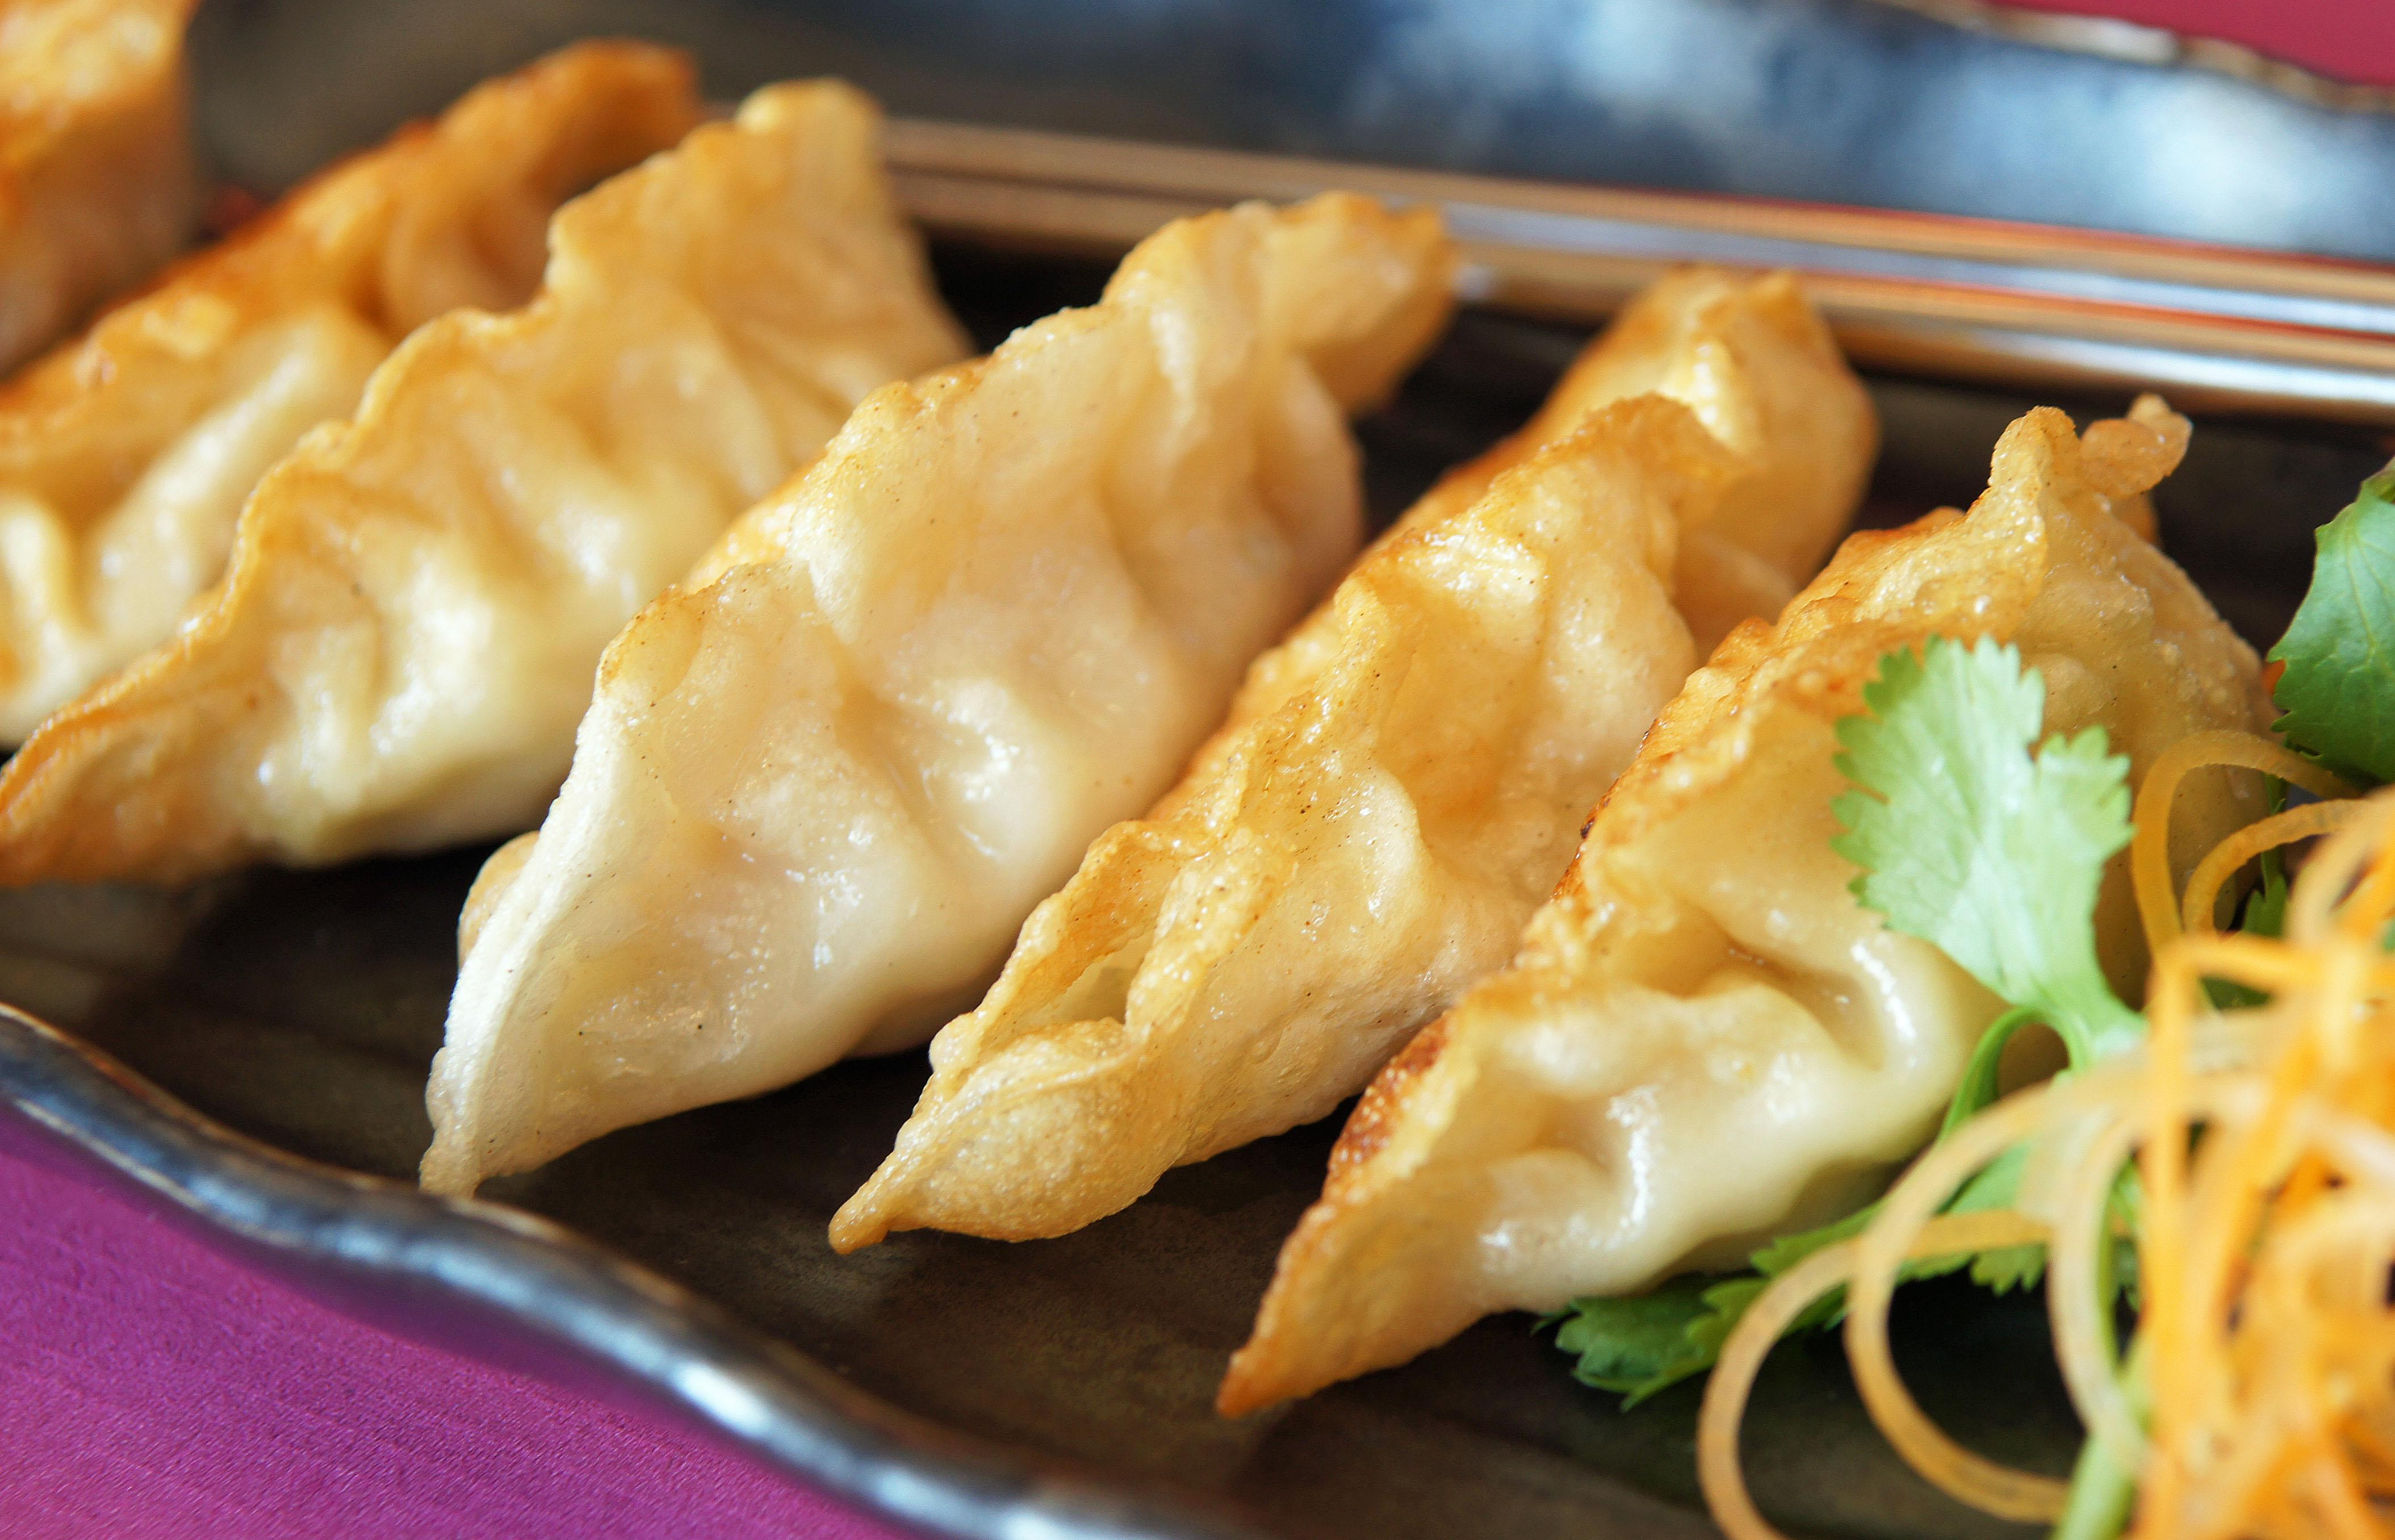 Gyoza - a Japanese appetizer made with chicken. at Cafe Opera